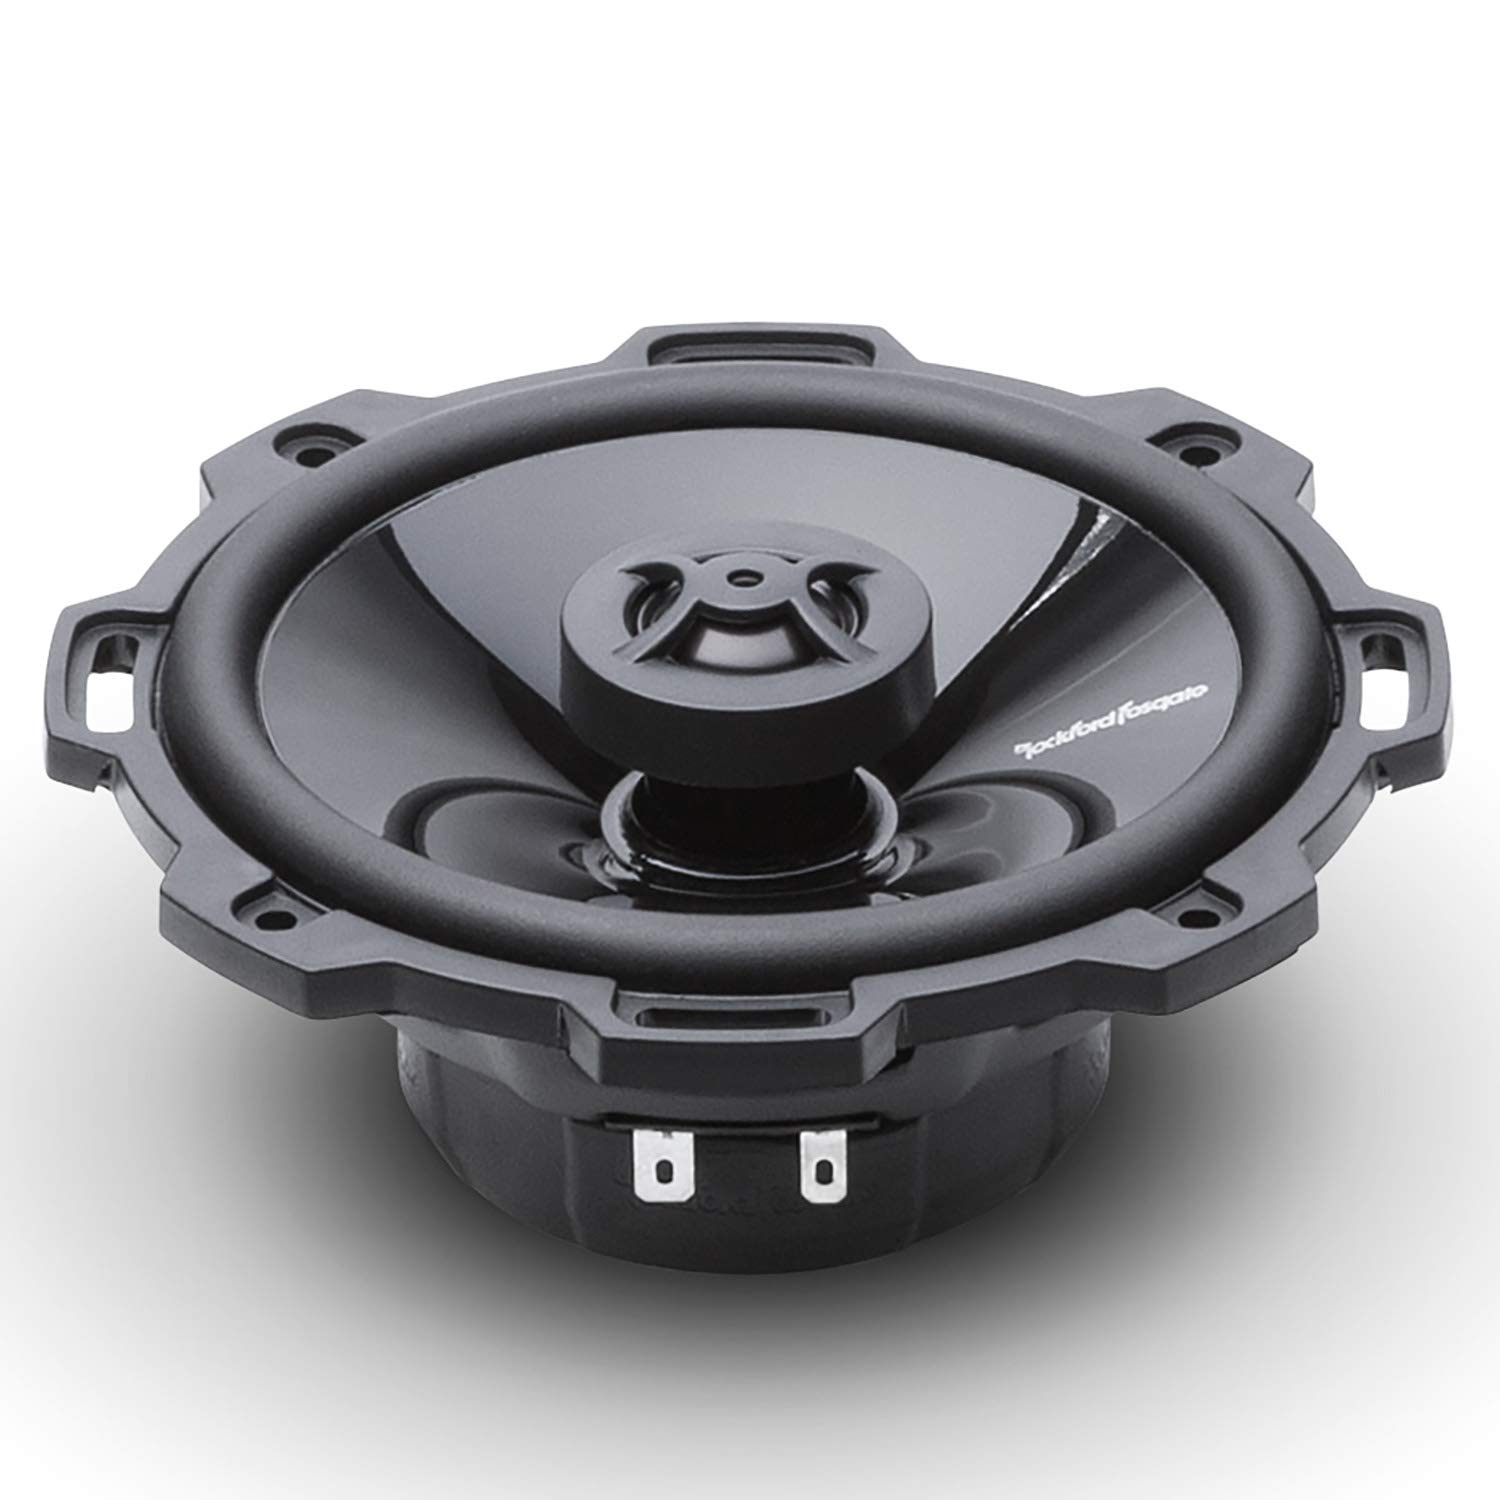 Rockford Fosgate Punch P152 5-Inch Full Range Coaxial Speakers